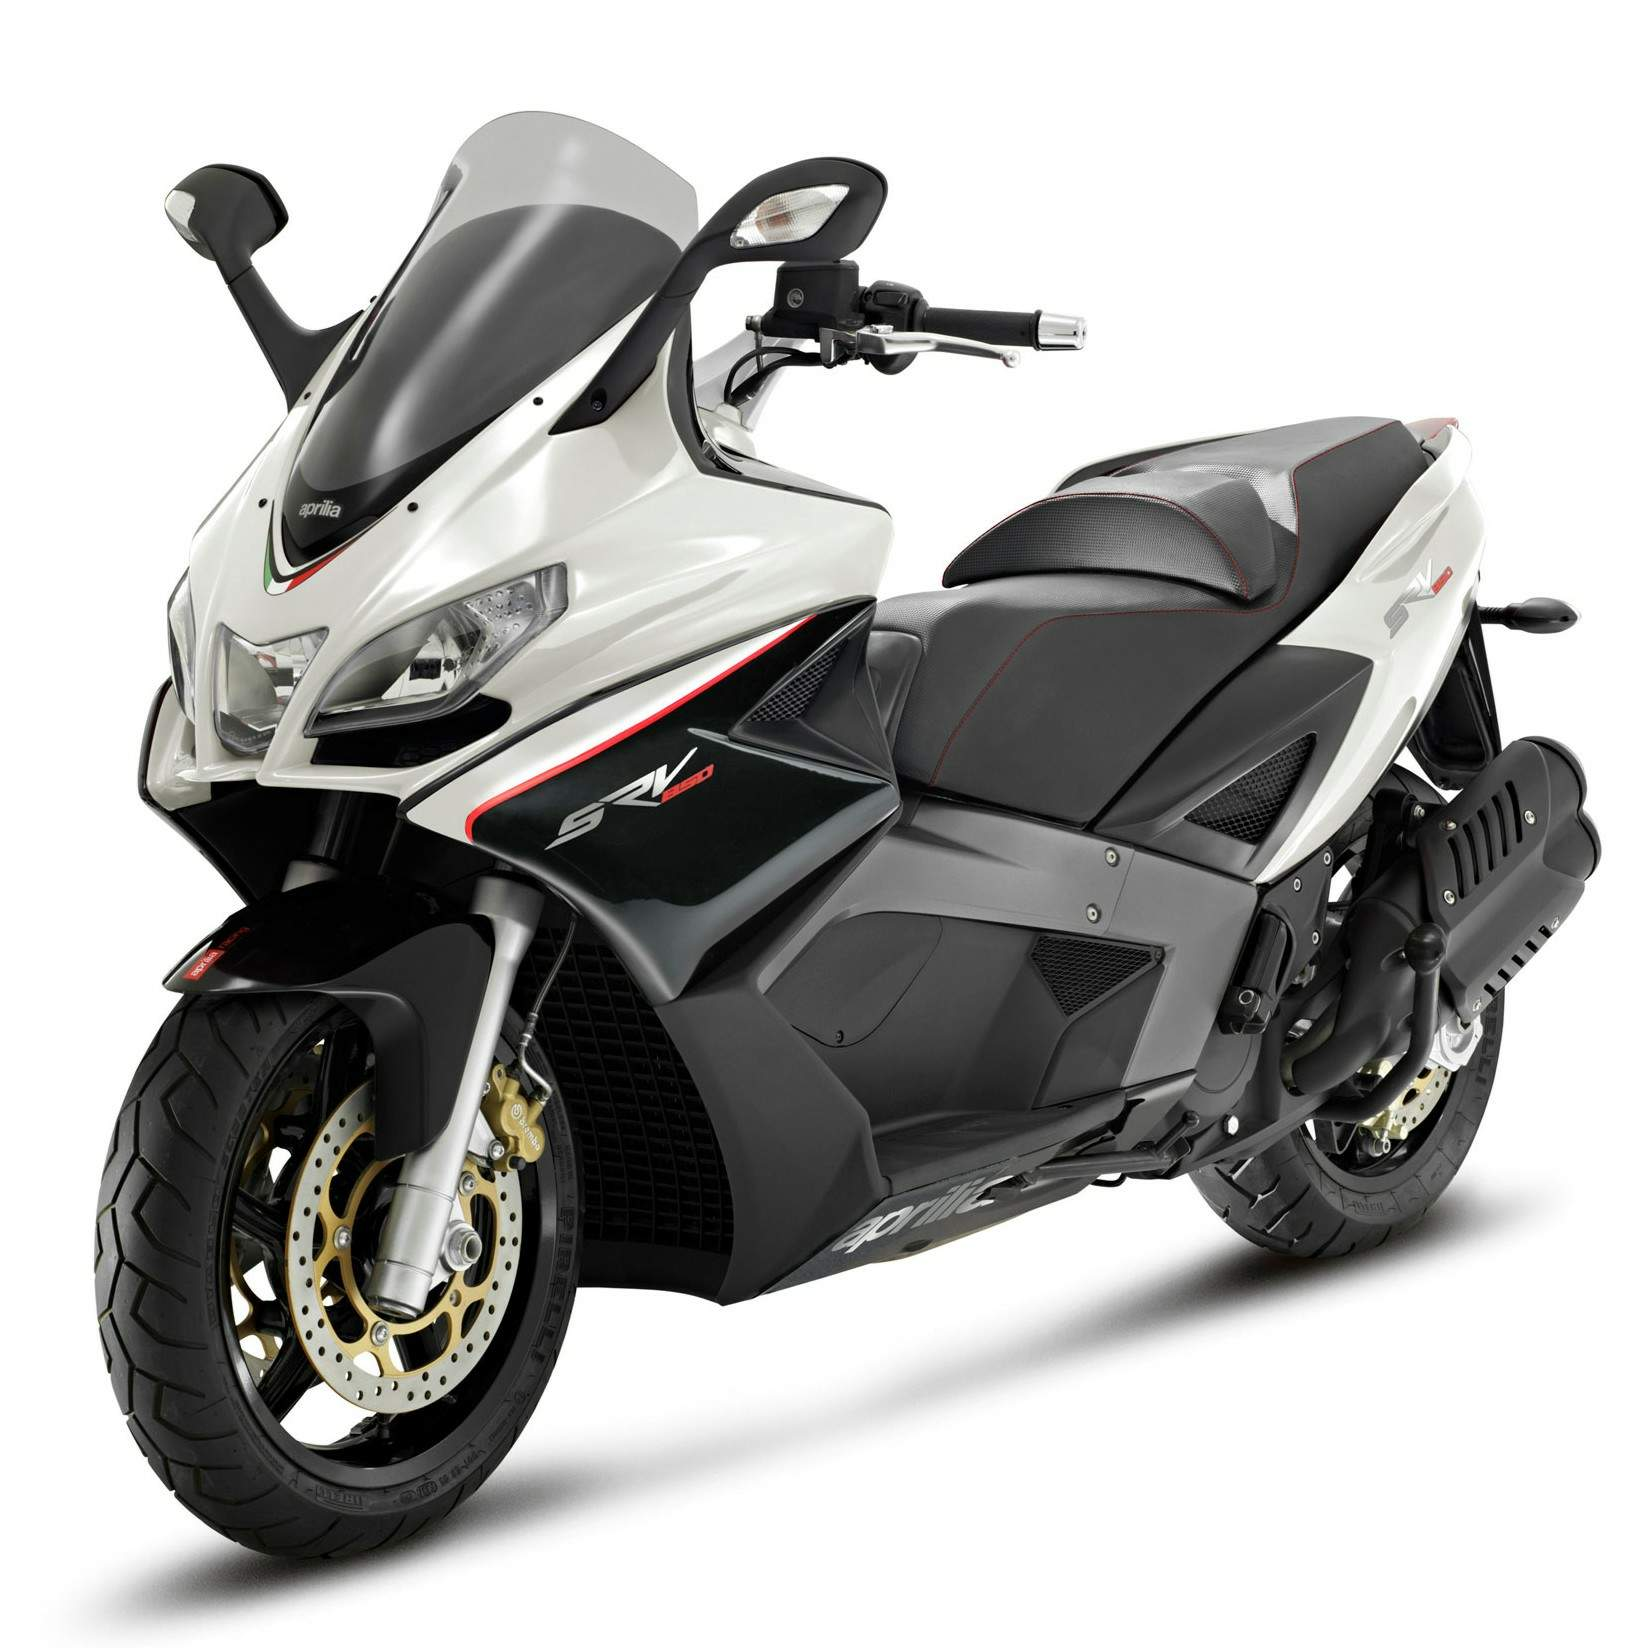 aprilia srv 850 maxi specs 2013 2014 autoevolution. Black Bedroom Furniture Sets. Home Design Ideas